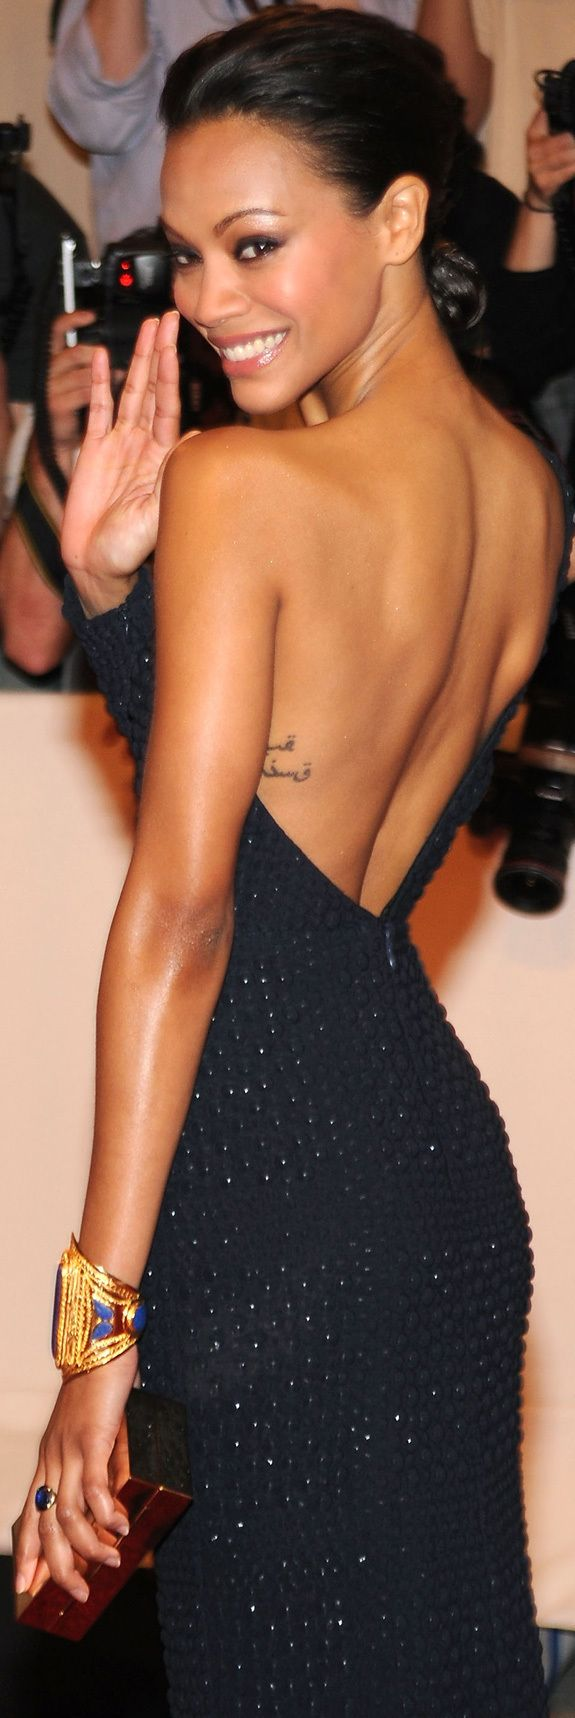 Meagan Good Tattoo : meagan, tattoo, ZOE-SALDANA-TATTOO-PHOTO.jpg, (JPEG-Grafik,, 575x1718, Pixel), Skaliert, (43%), Fashion,, Saldana,, Celebrities, Female